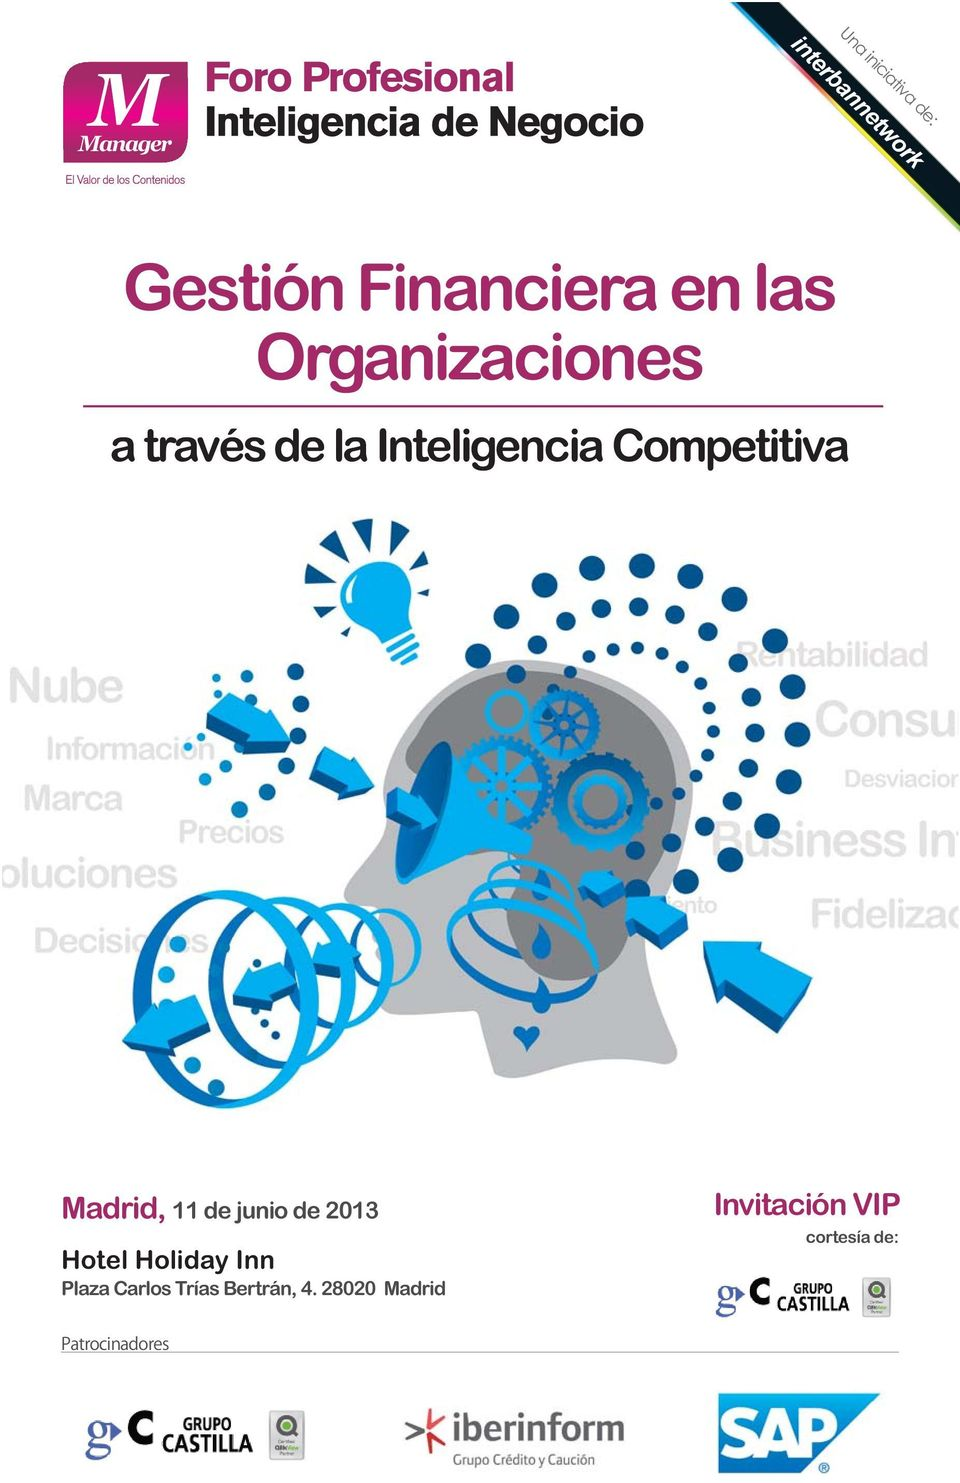 Madrid, 11 de junio de 2013 Hotel Holiday Inn Plaza Carlos